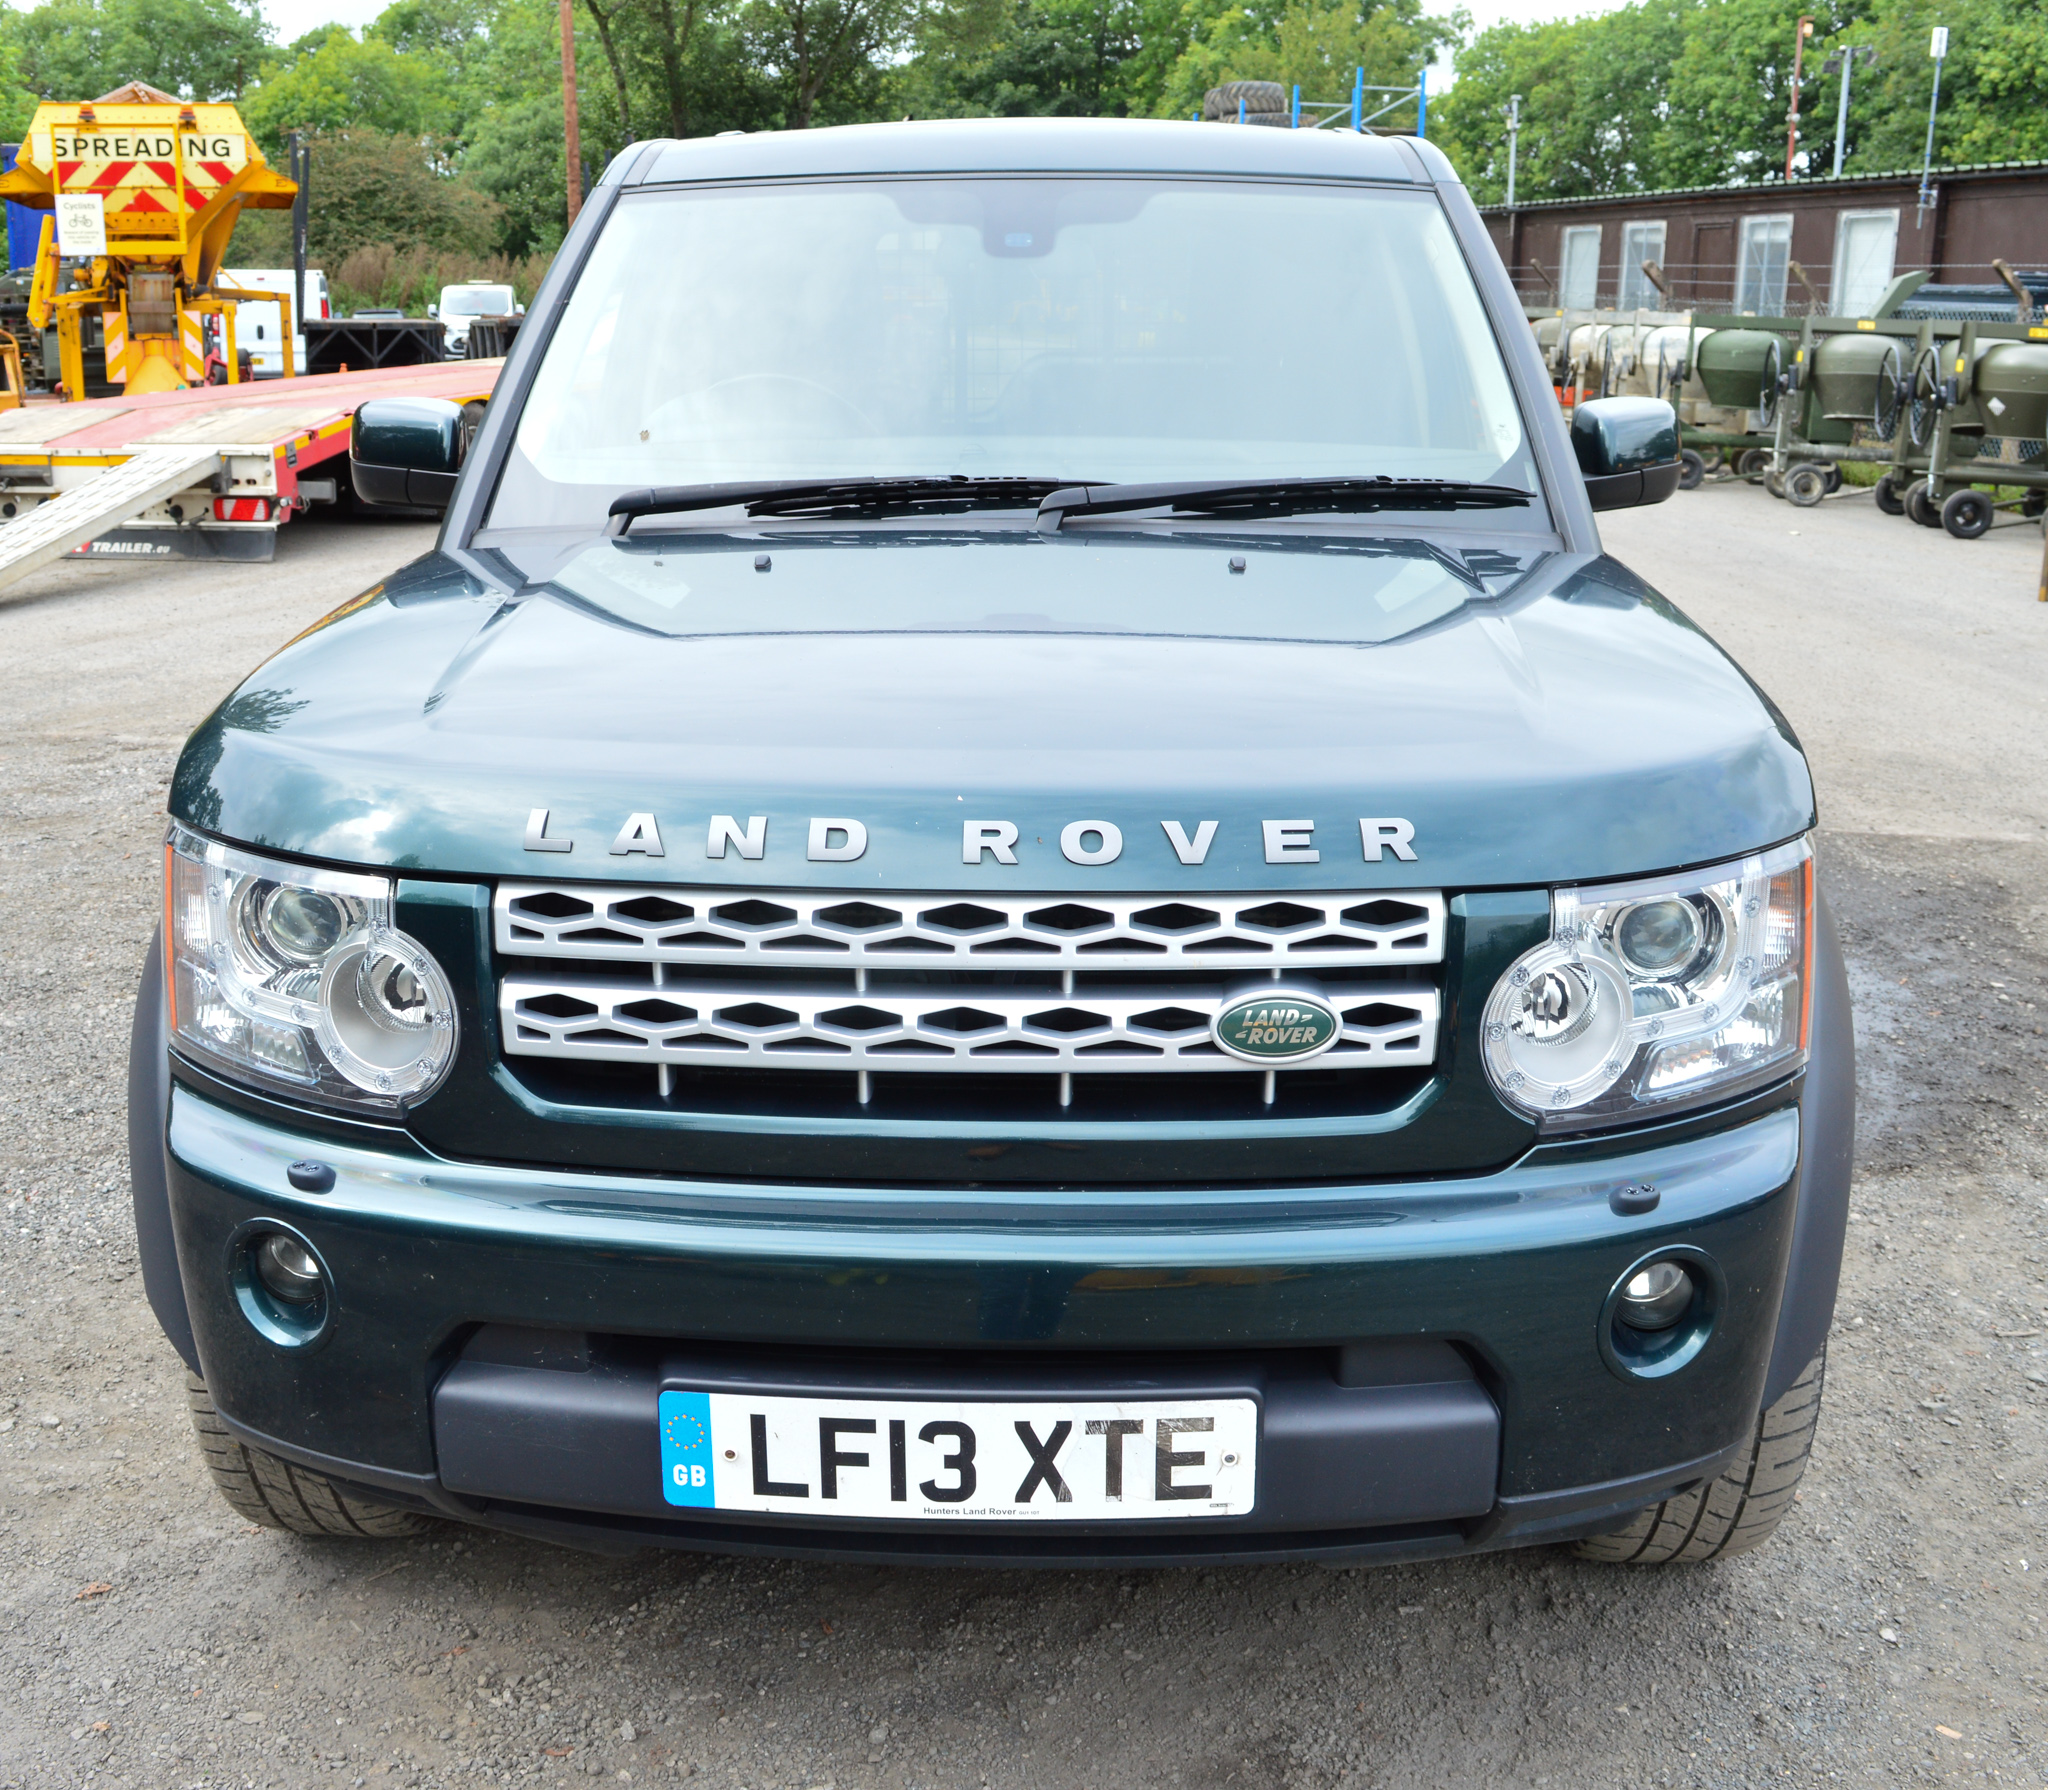 Land Rover Discovery 4 SDV6 Auto 4x4 Commercial Utility